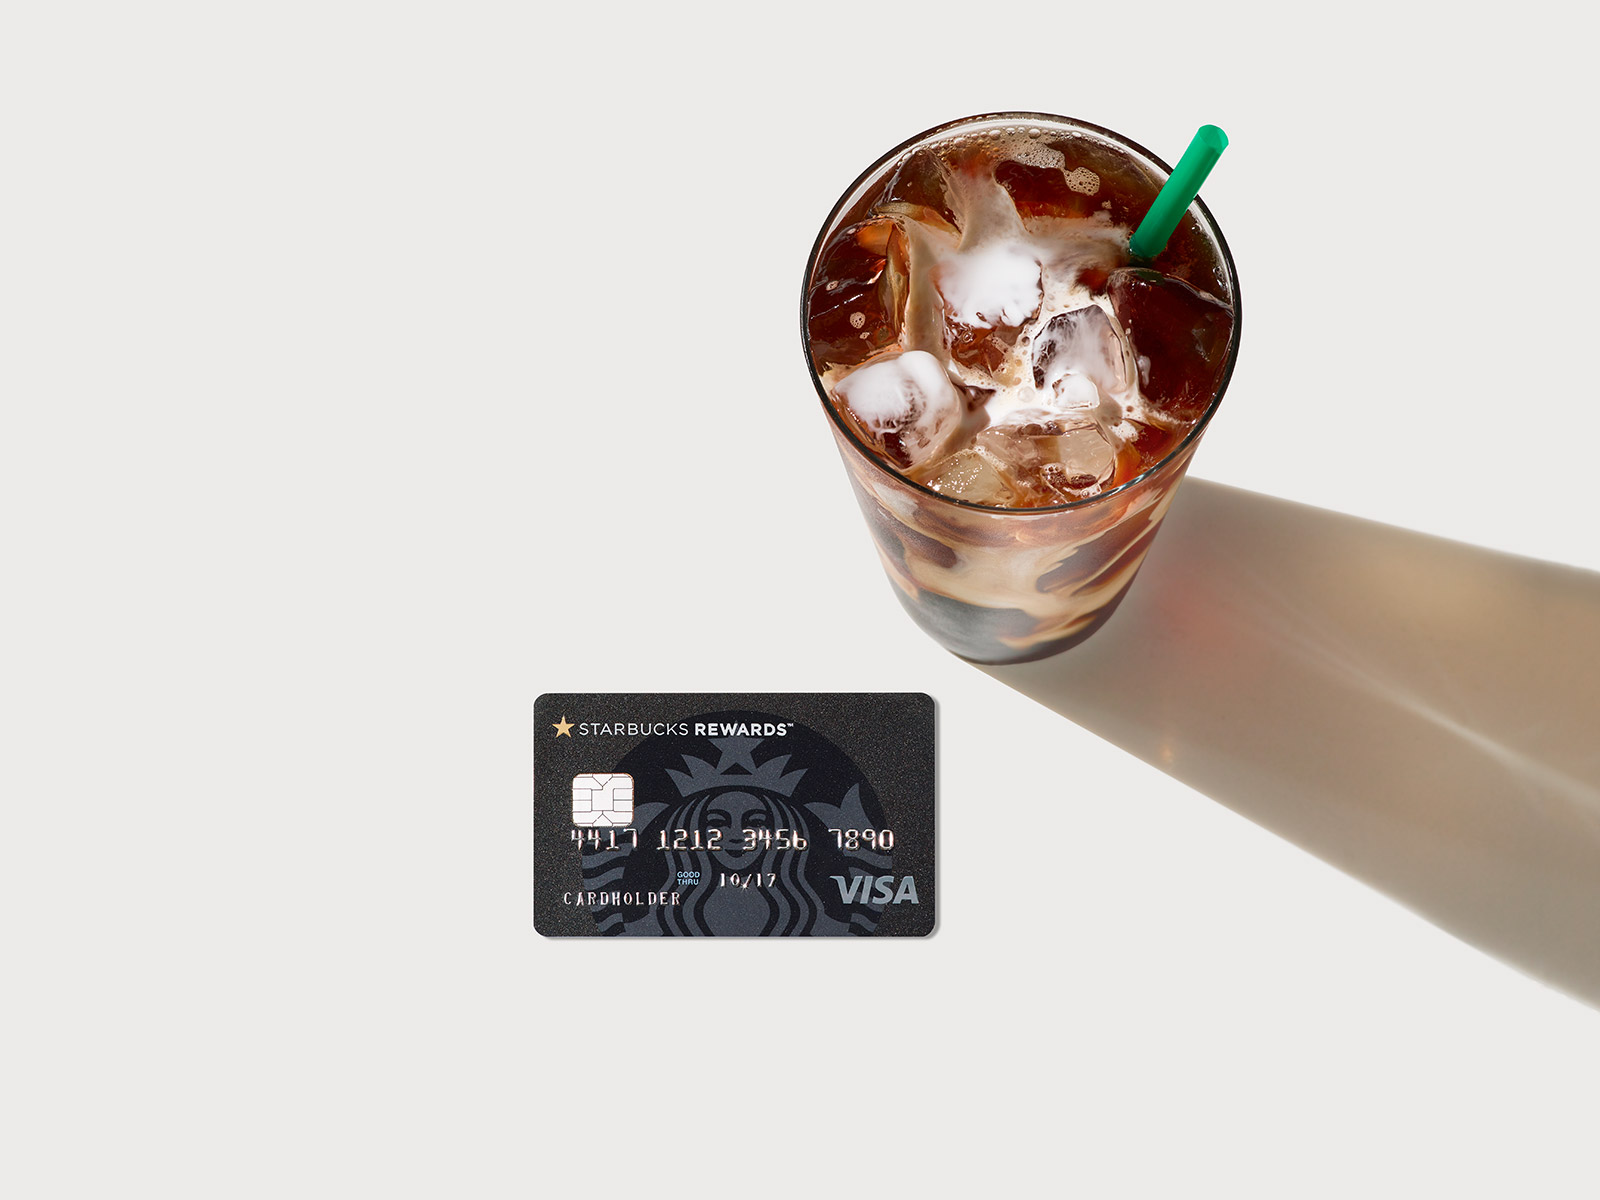 Starbucks Just Launched A Credit Card With Lots Of